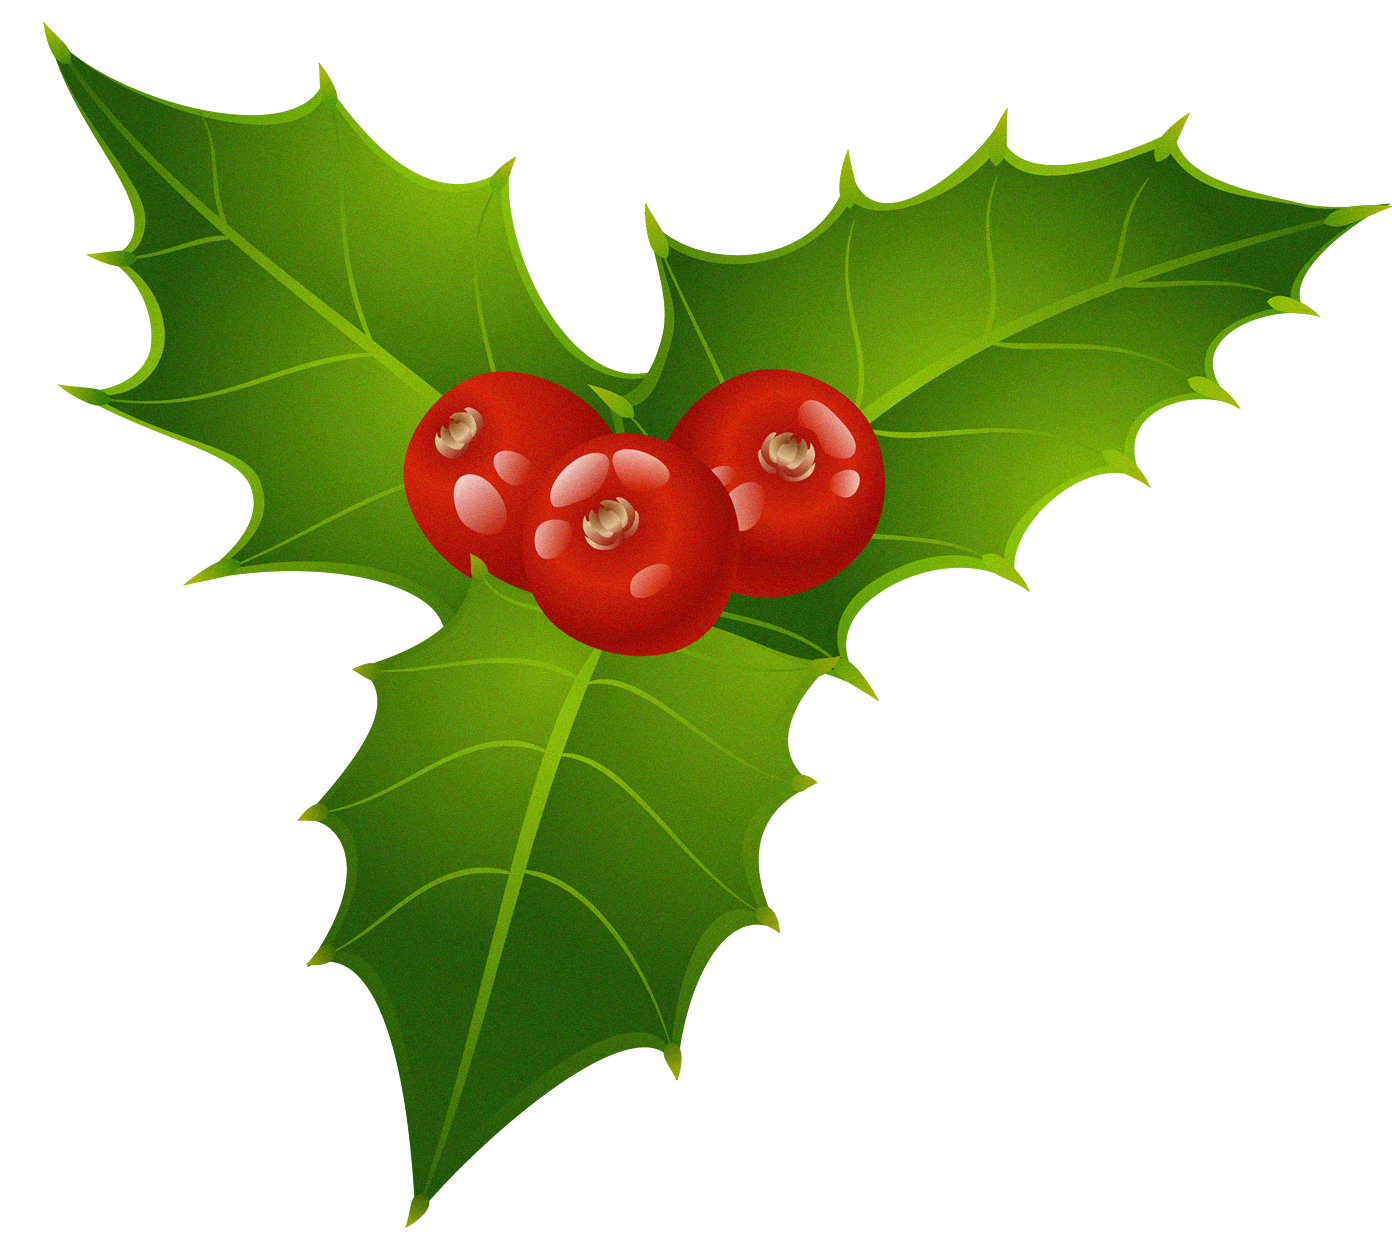 Christmas Clipart Png.Christmas Mistletoe Transparent Png Clipart Free Download